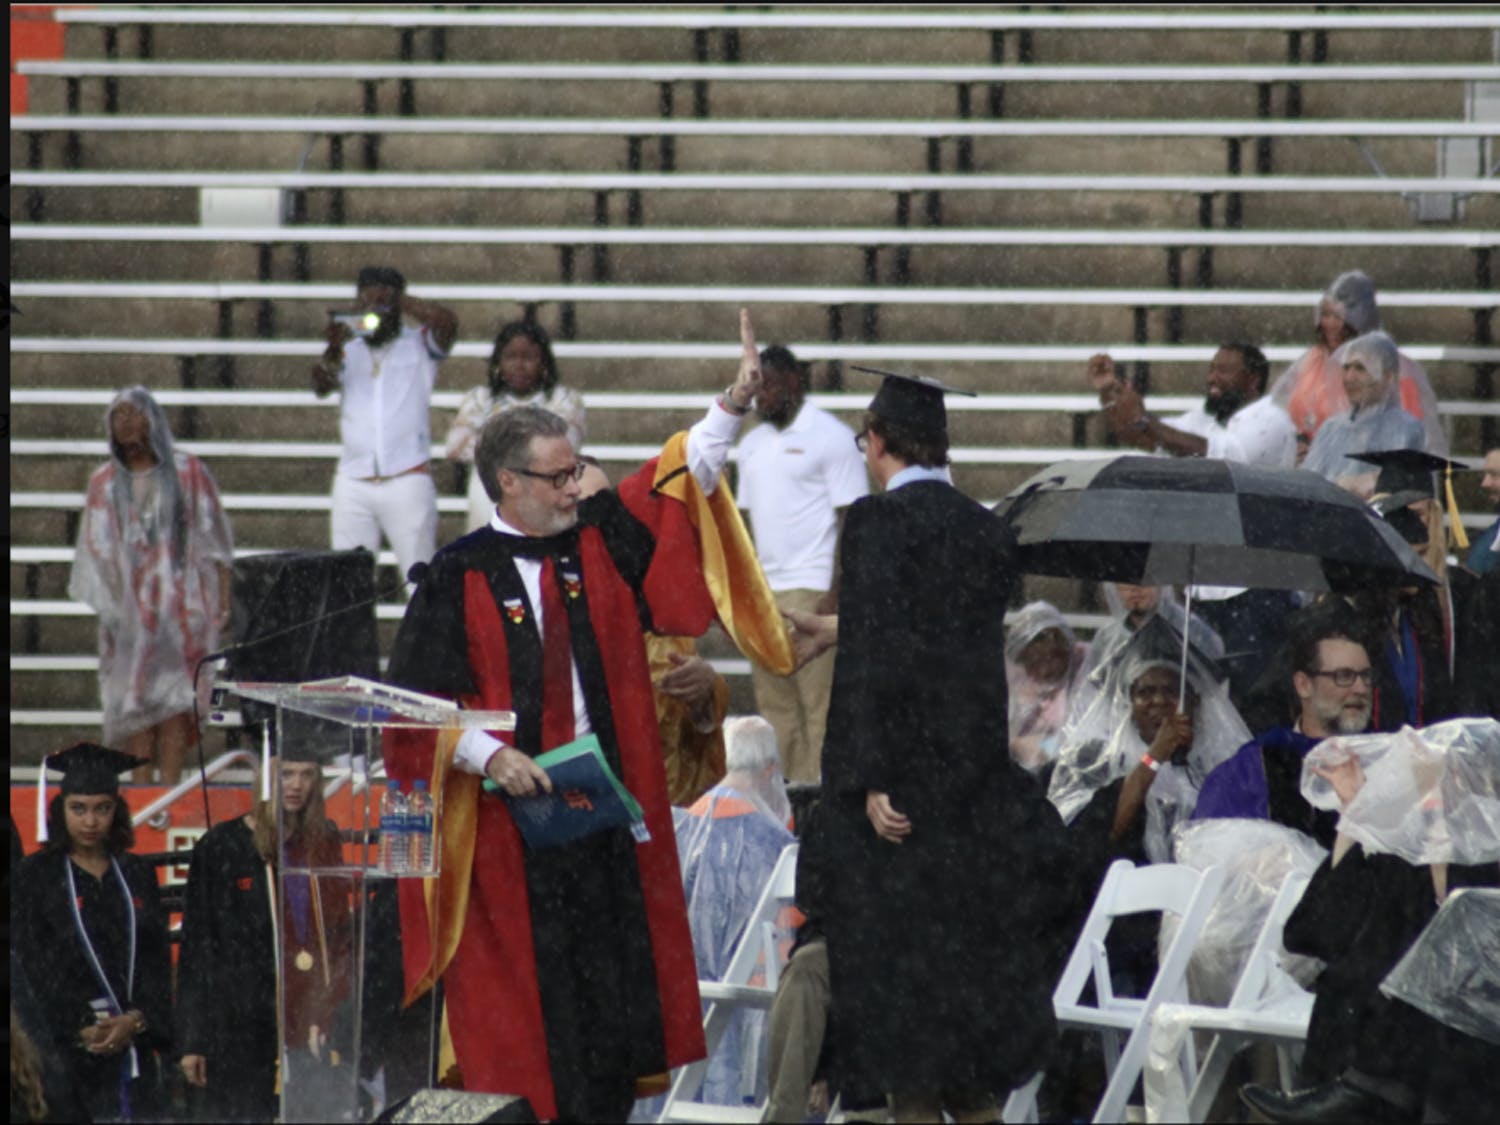 College of Liberal Arts and Sciences Dean, David Richardson, gestures to pause the commencement ceremony. Richardson announced the ceremony would be delayed by 30 minutes, but the ceremony was later moved to an insidehallway of the stadium.